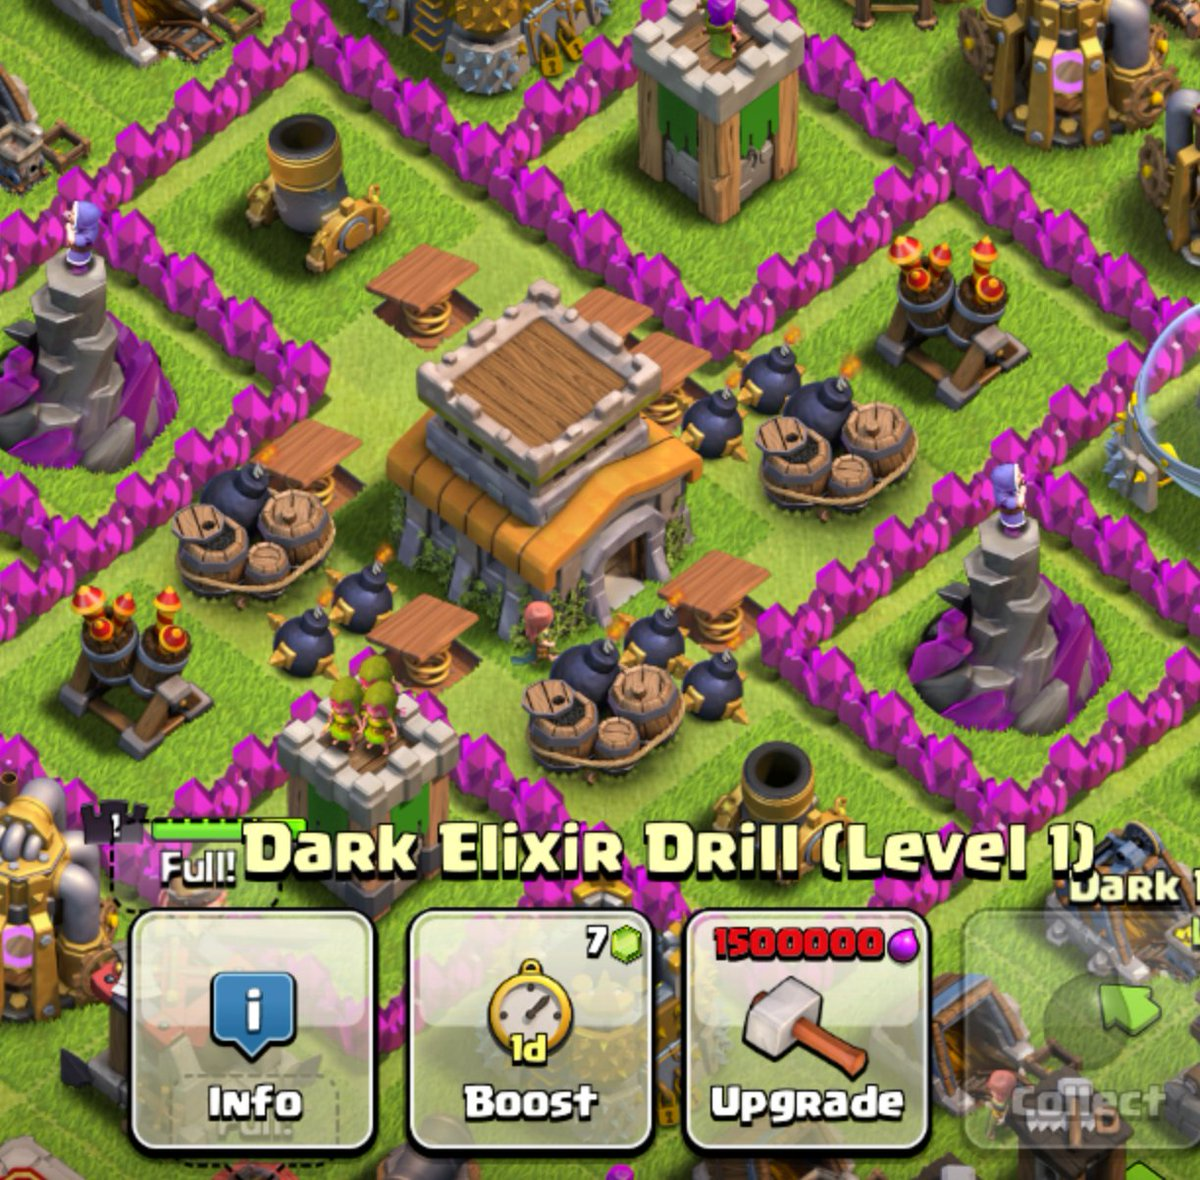 Free Coc Accounts On Twitter 1st Free Clash Of Clans Account Password Part 8 Of 8 Https T Co L9azru9h02 Freeclashofclansaccounts Clashofclans Coc Https T Co Pkprlwww9u